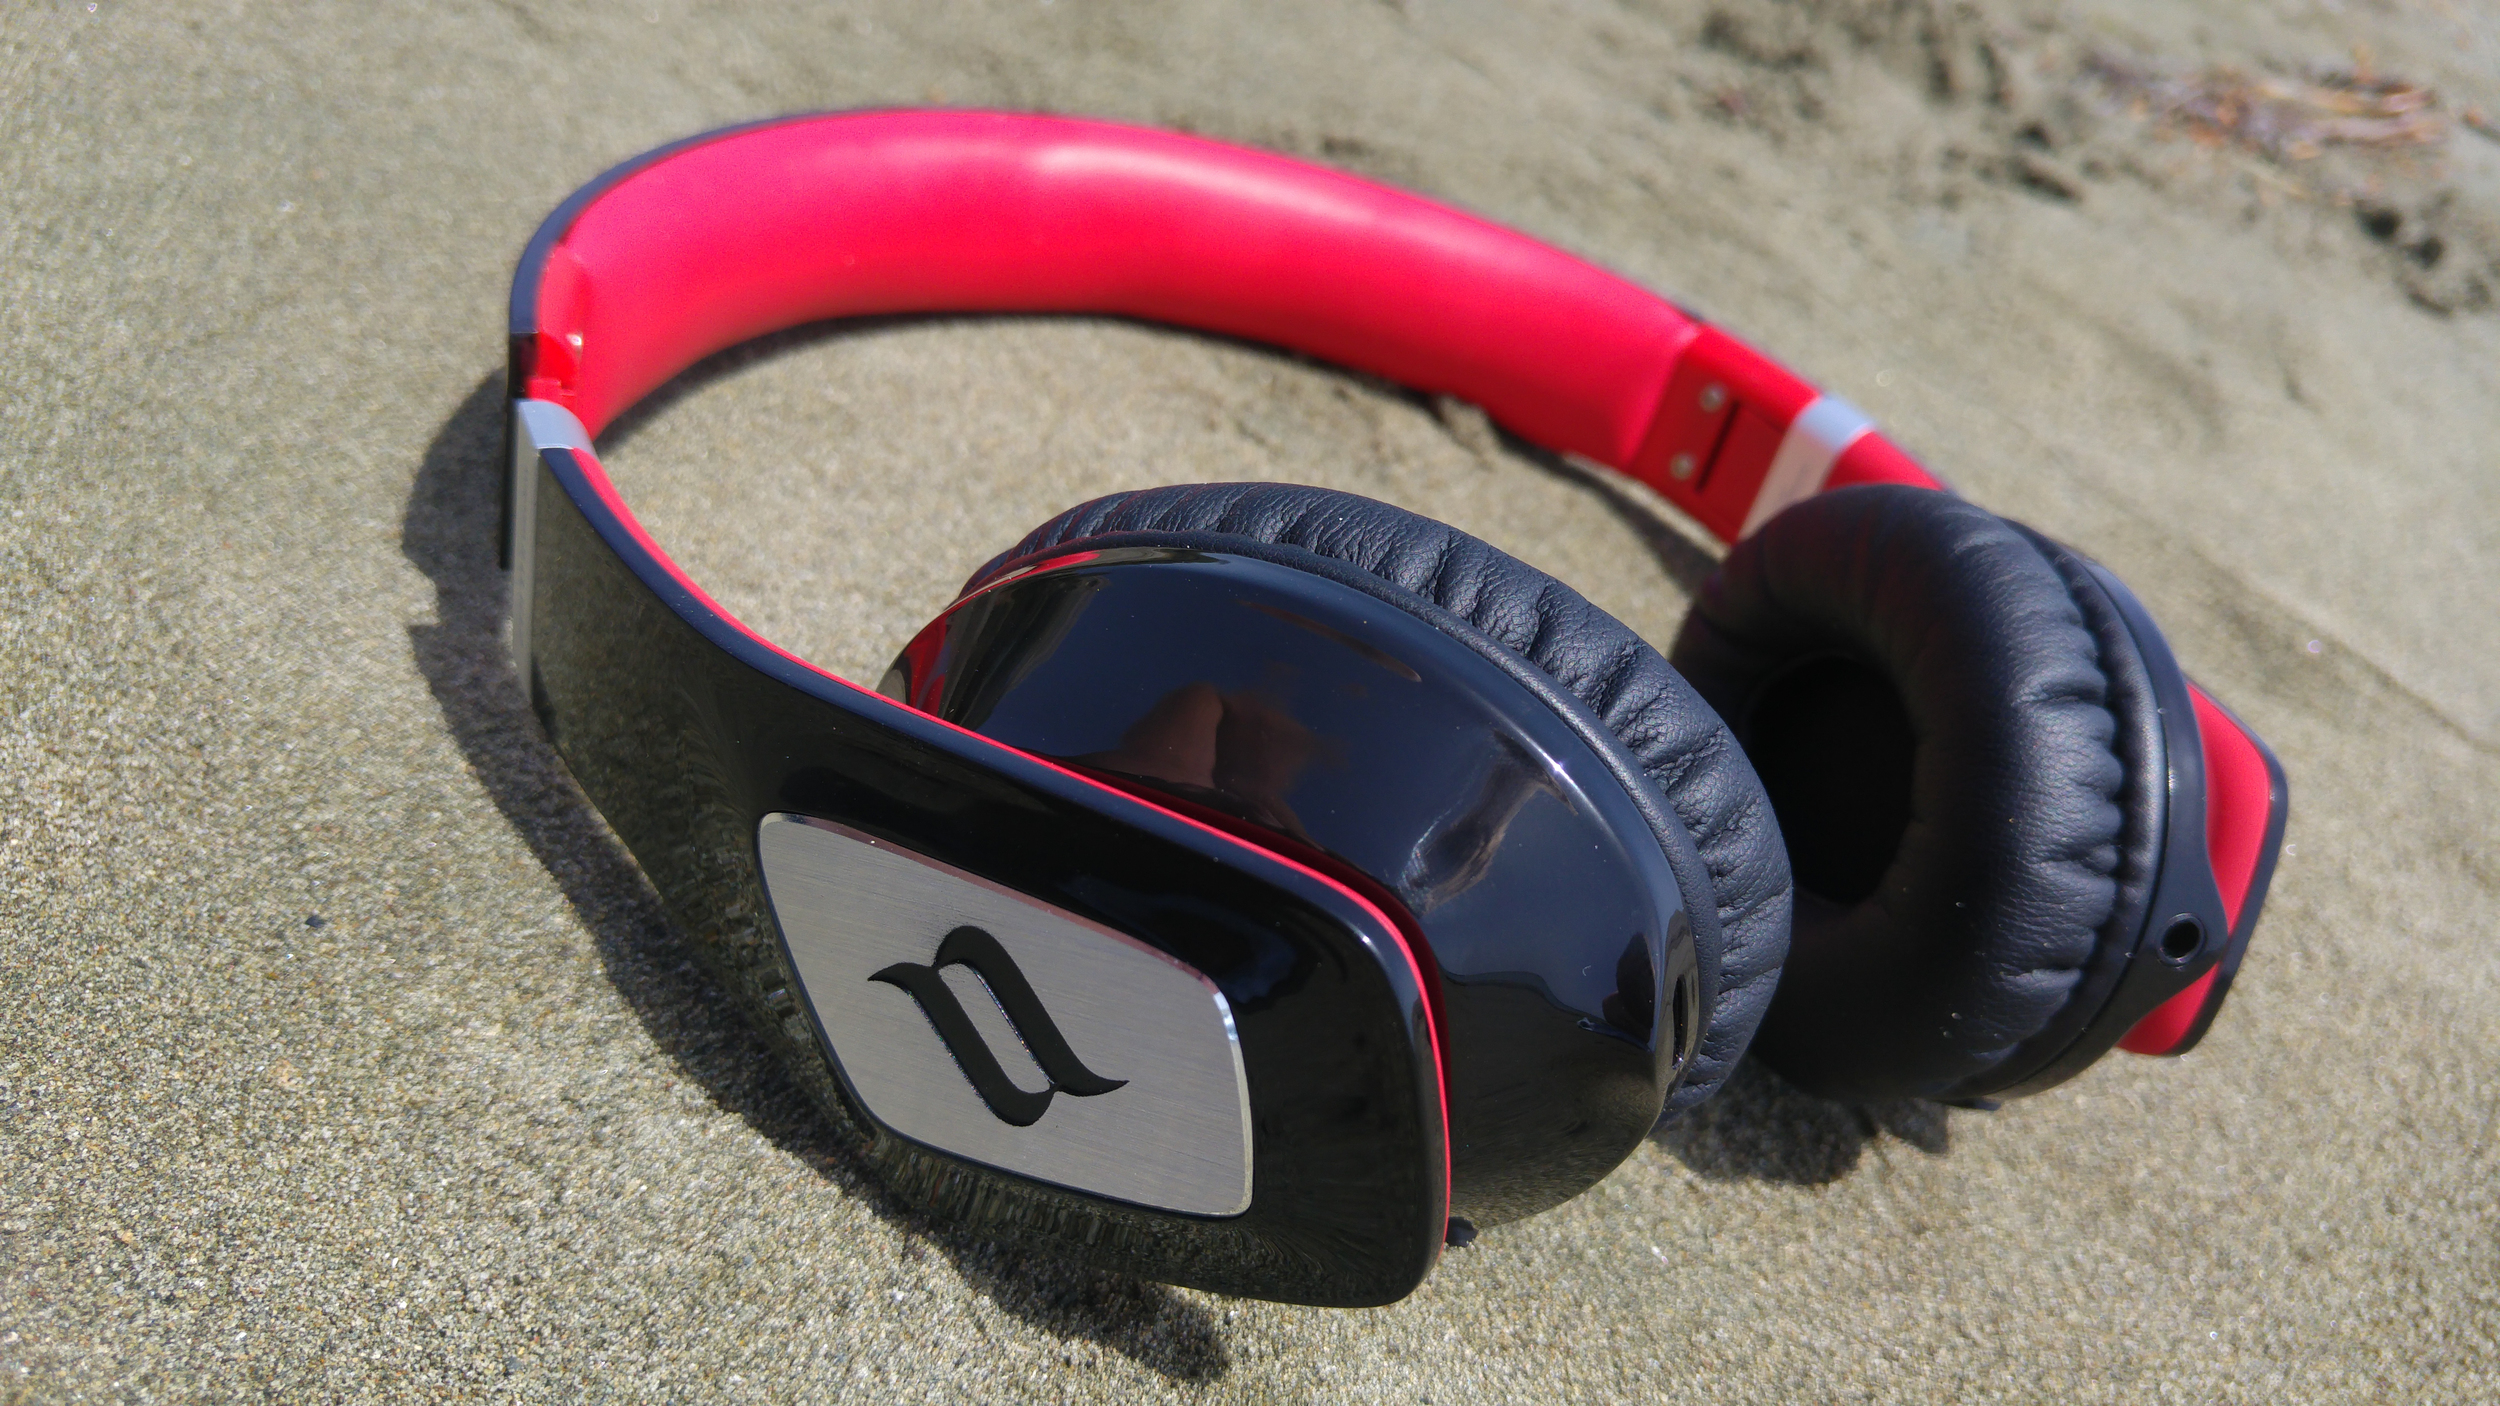 We liked the Zoro Wireless headphones in the black and red best... it just looks right.  However Noontec do offer the headphones in a range of colour options to suit your style.